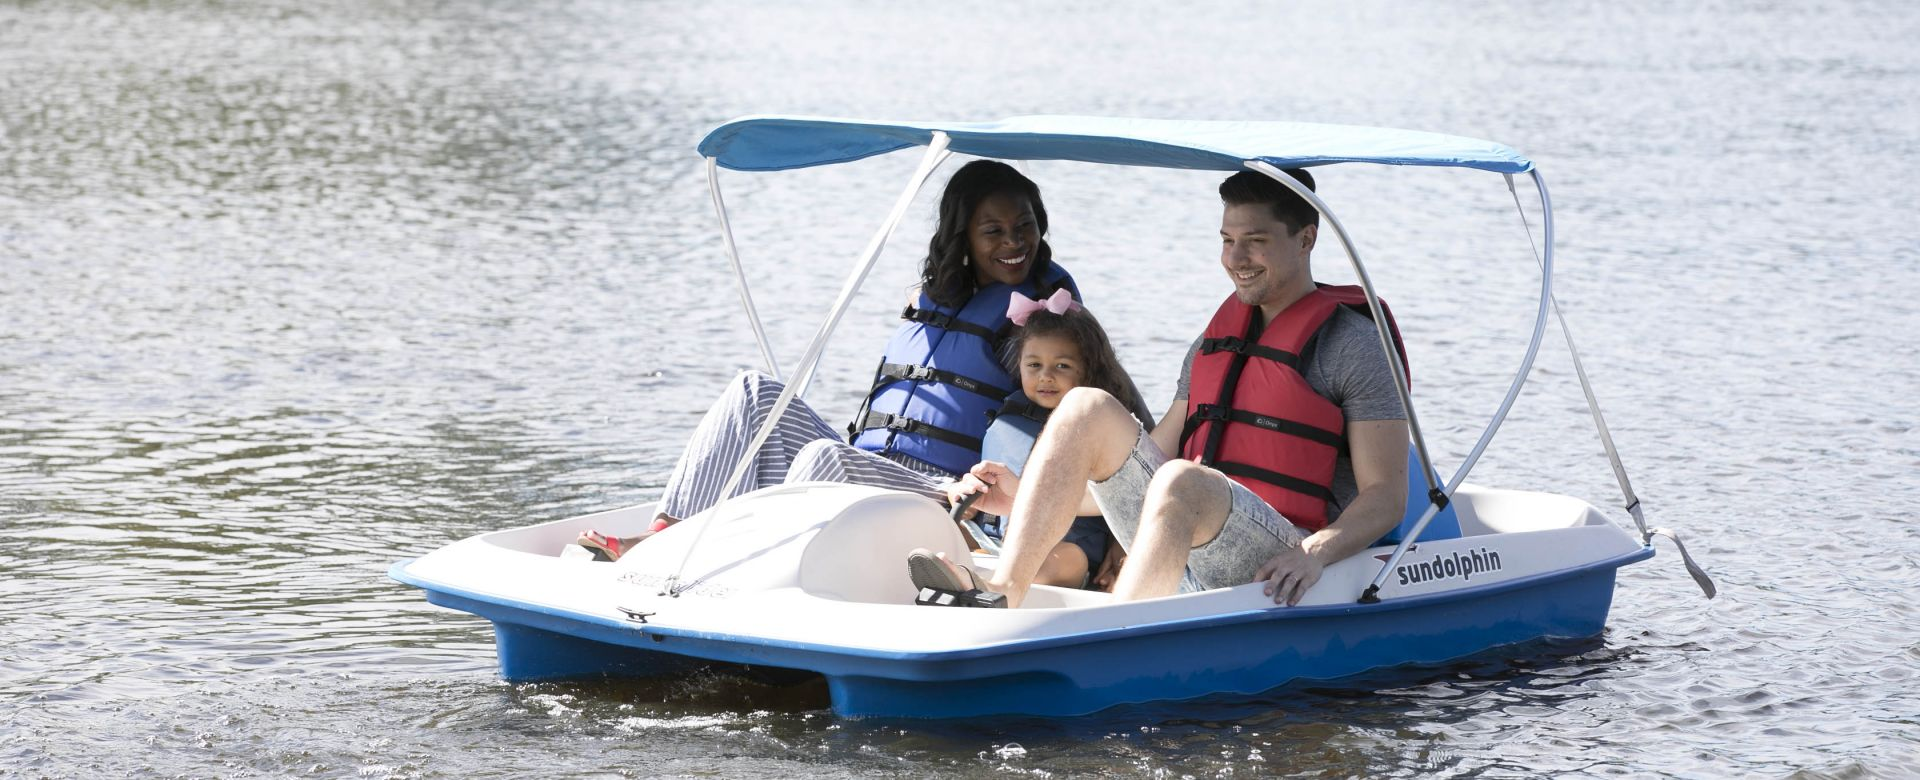 A family paddle-boating on a lake.